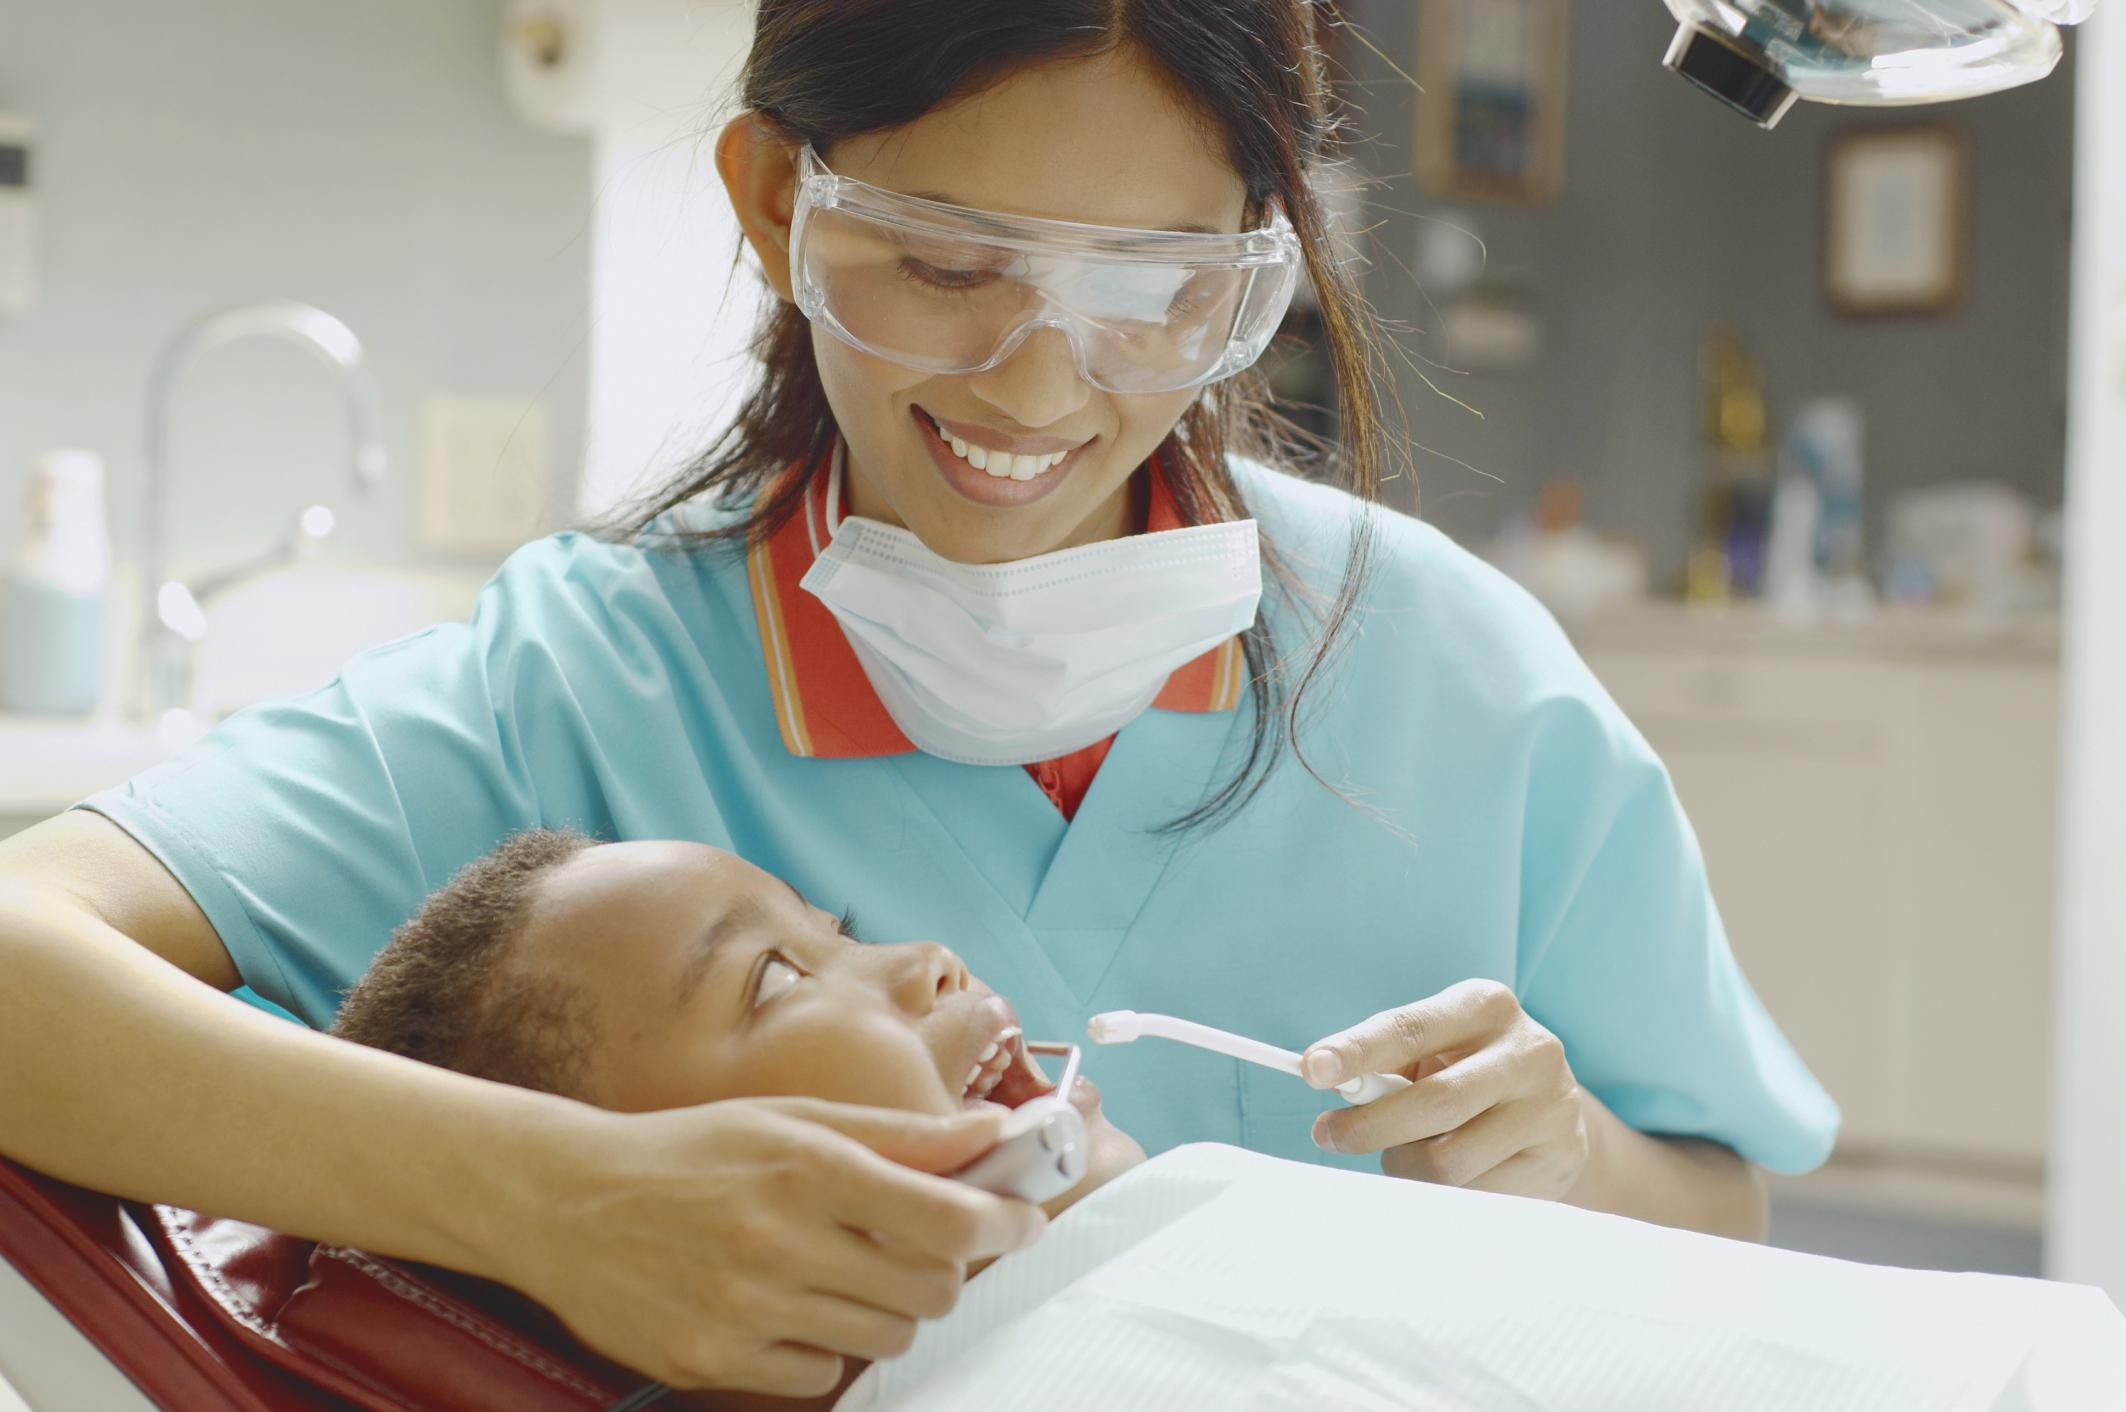 dental hygienist The registered dental hygienist is a licensed health care professional dedicated to the maintenance of optimal oral health and the prevention of oral disease.